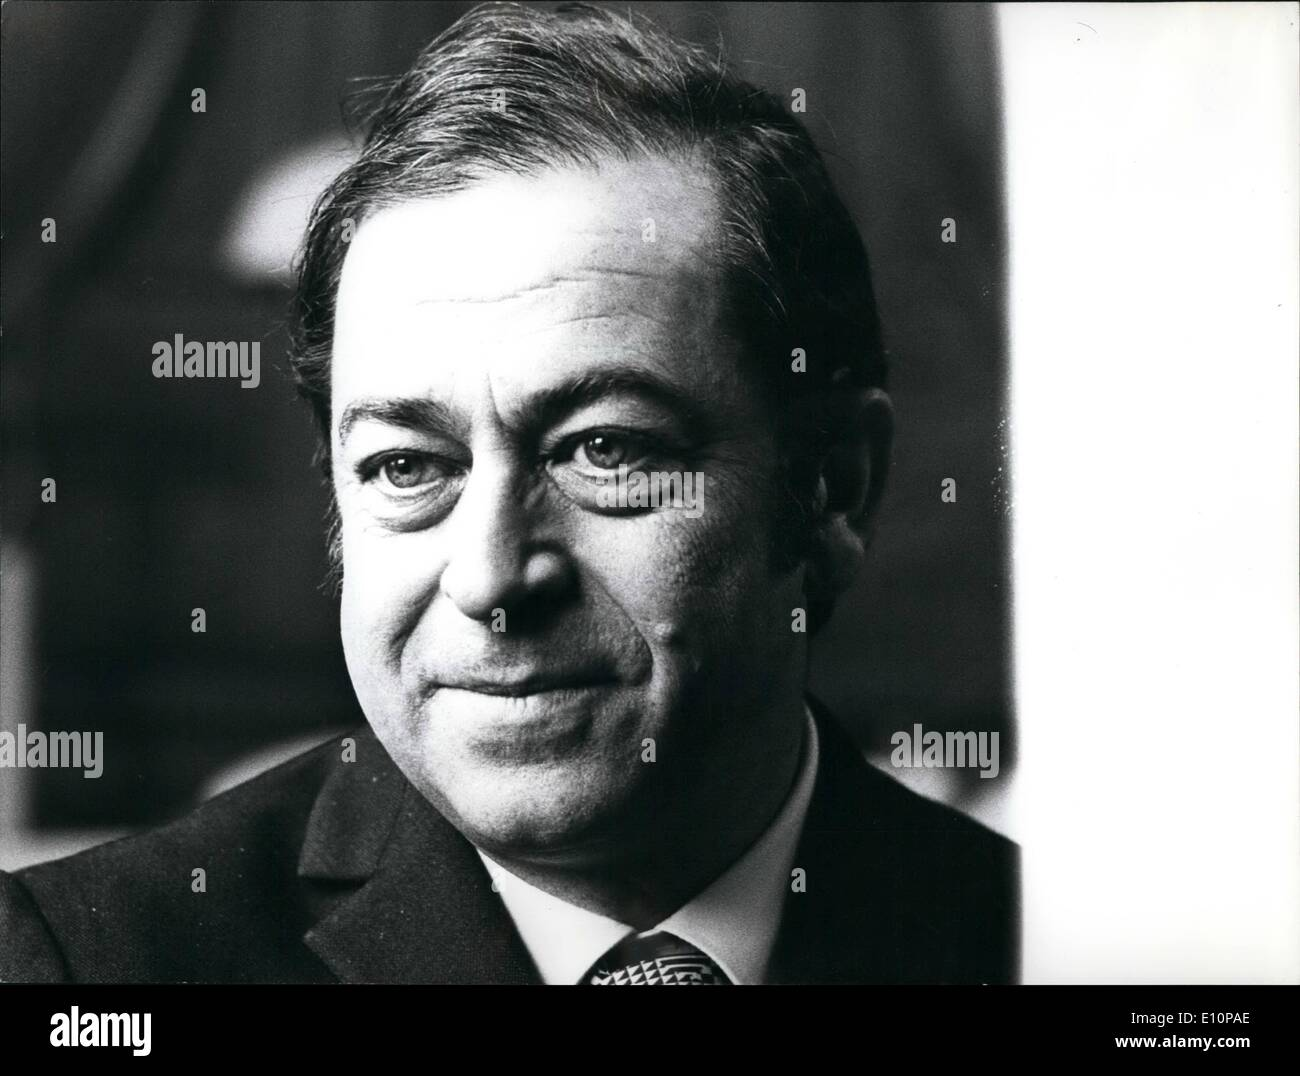 Nov. 11, 1973 - Election of New Swiss Ministers Ops: Designated candidate for the succession of Roger Bonvin, Enrico /cil Franzoni, president of National Council. - Stock Image